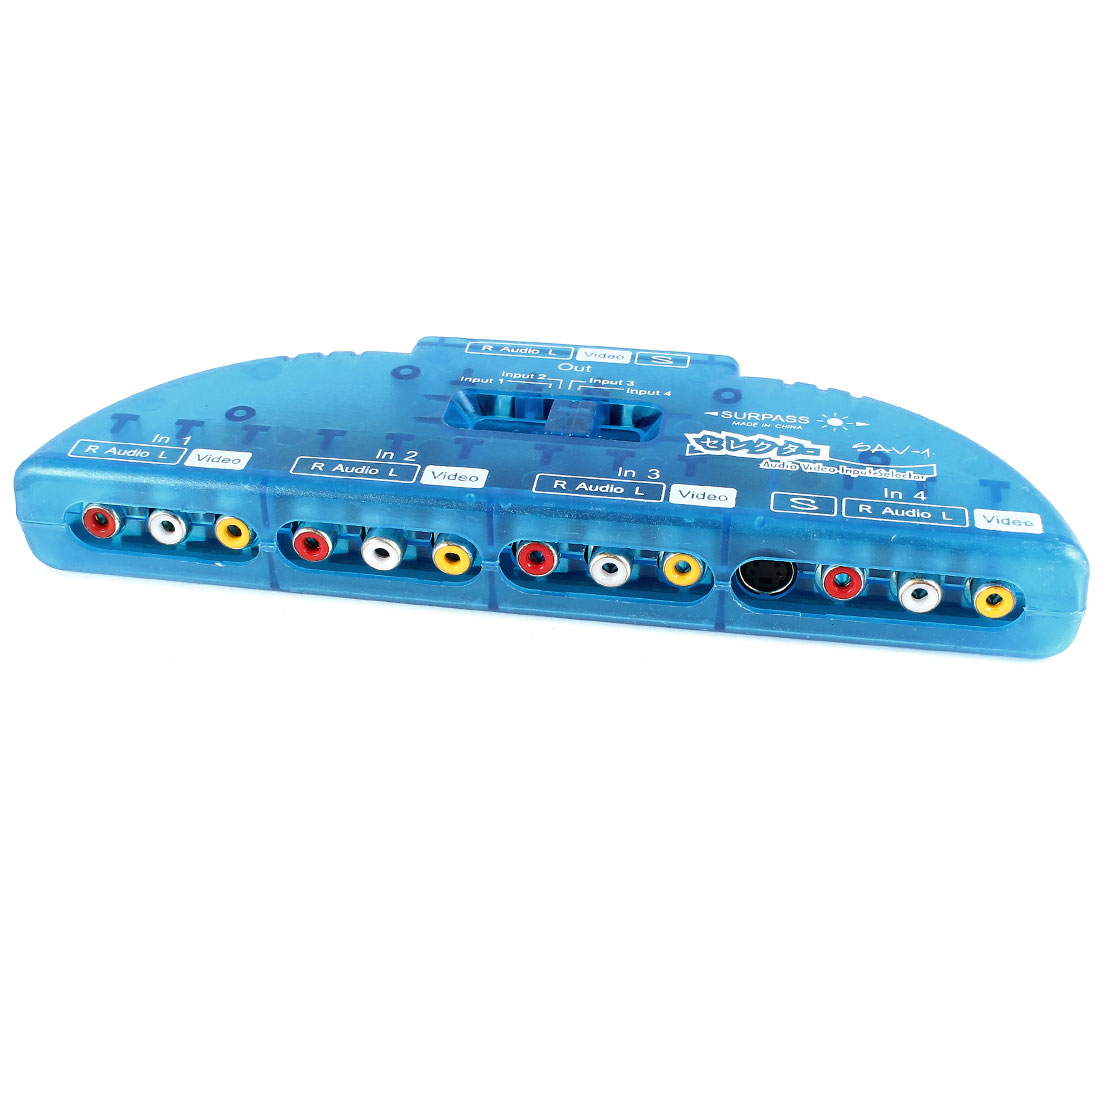 TV DVD 4 Input 1 Output Audio Video Switch Box Selector Clear Blue